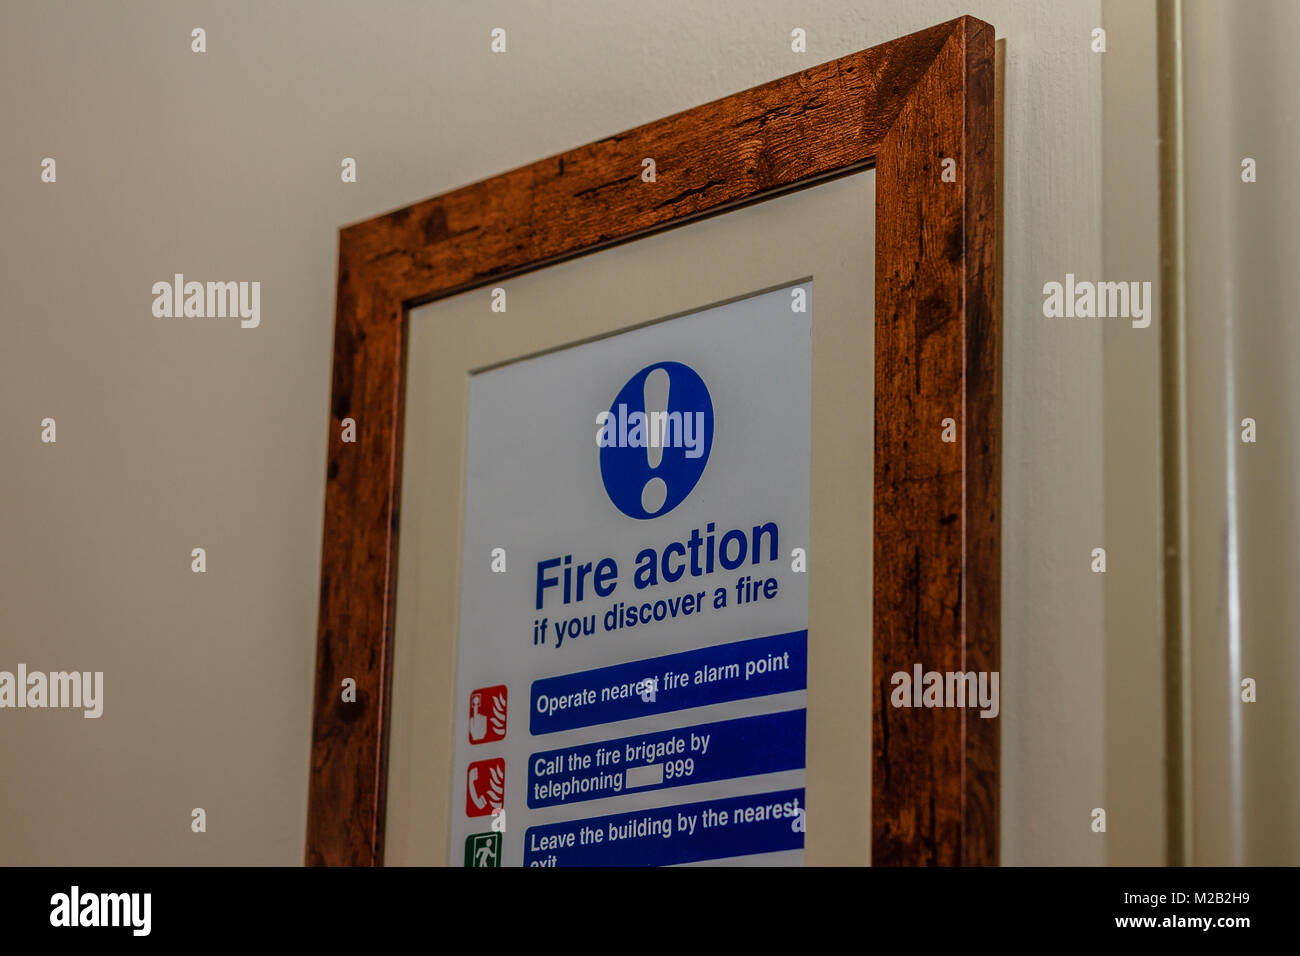 Fire safety notice - Stock Image